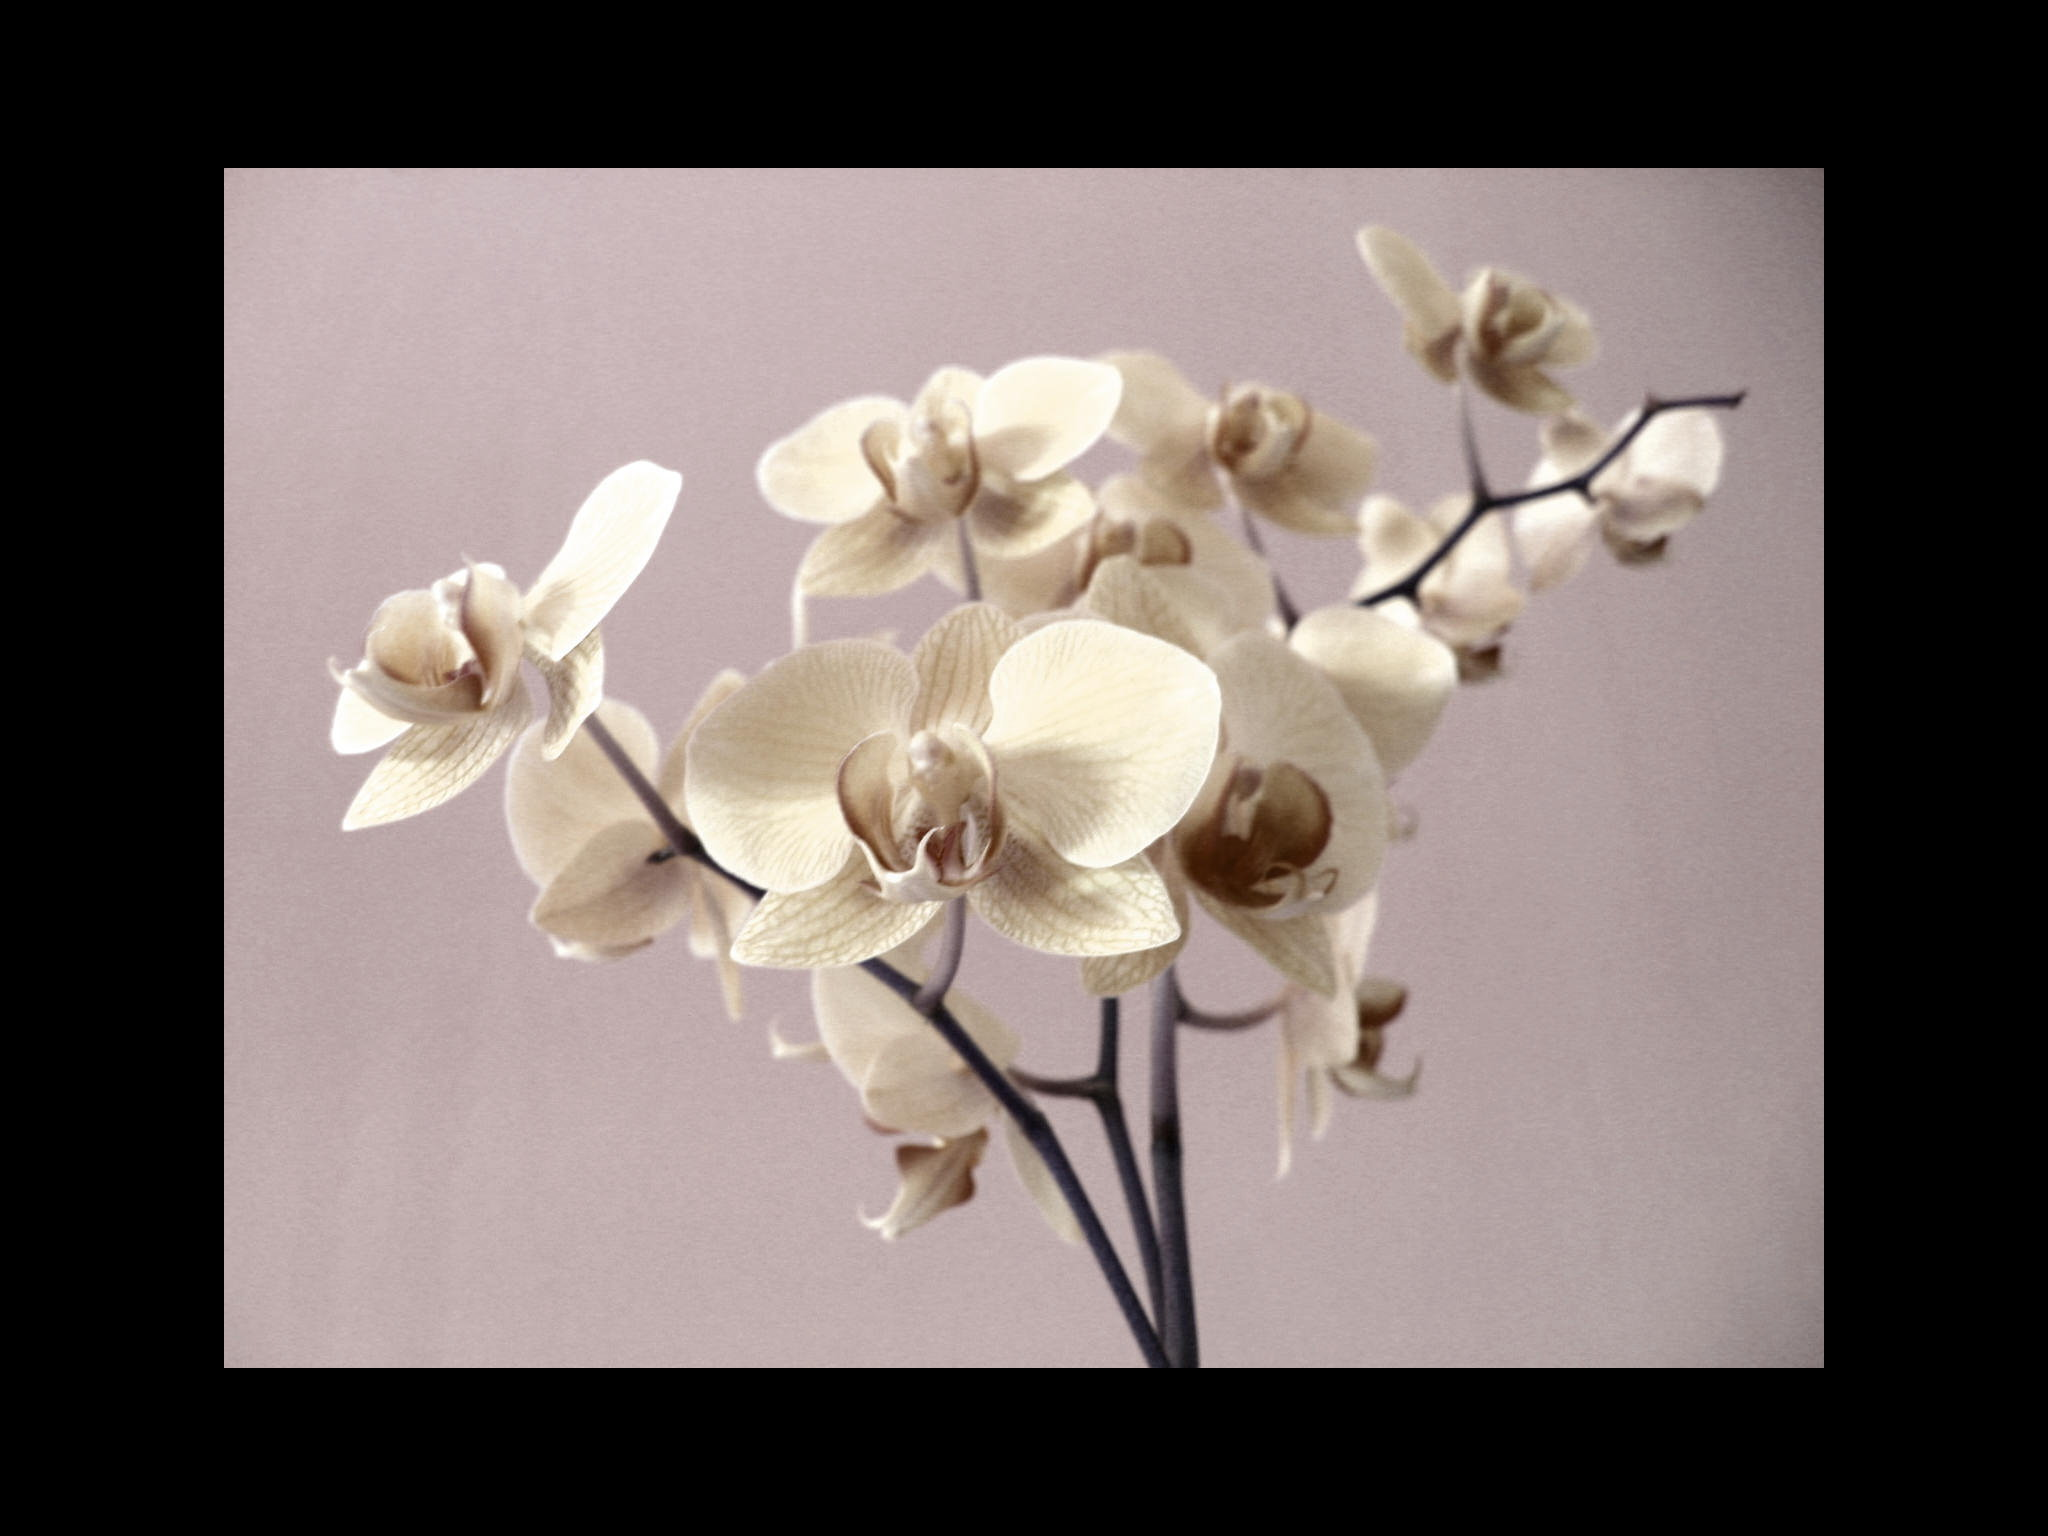 Types of orchids